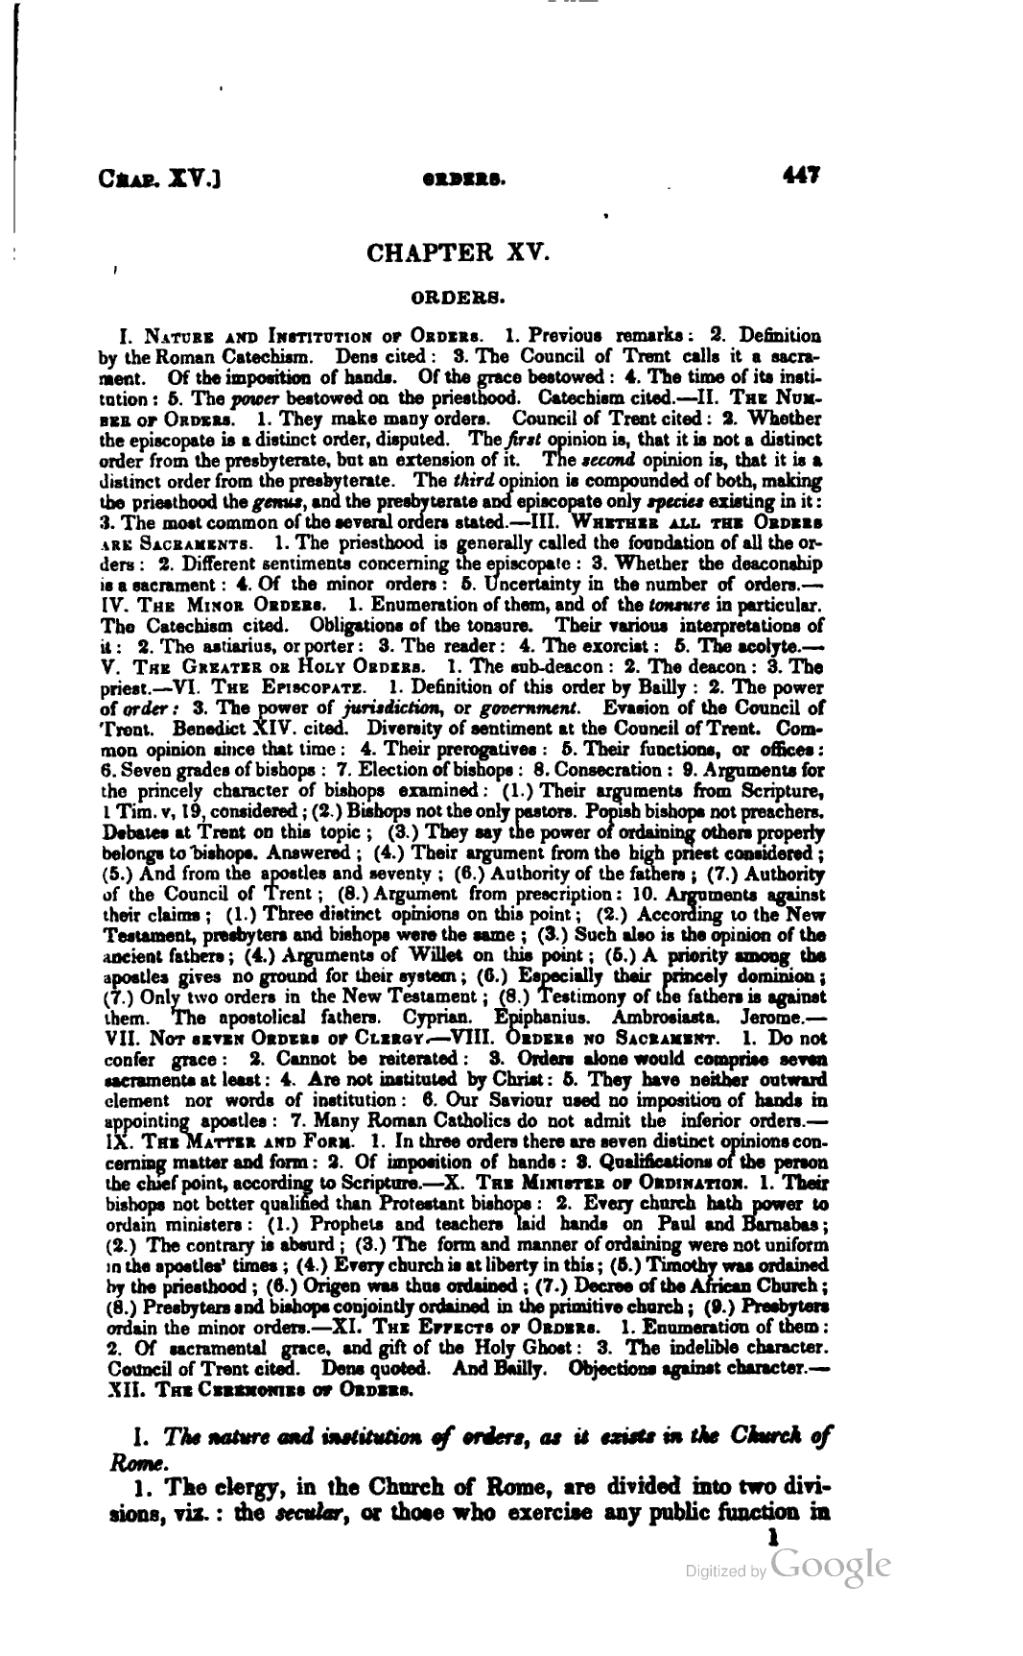 page delineation of roman catholicism djvu 453 wikisource the rh en wikisource org